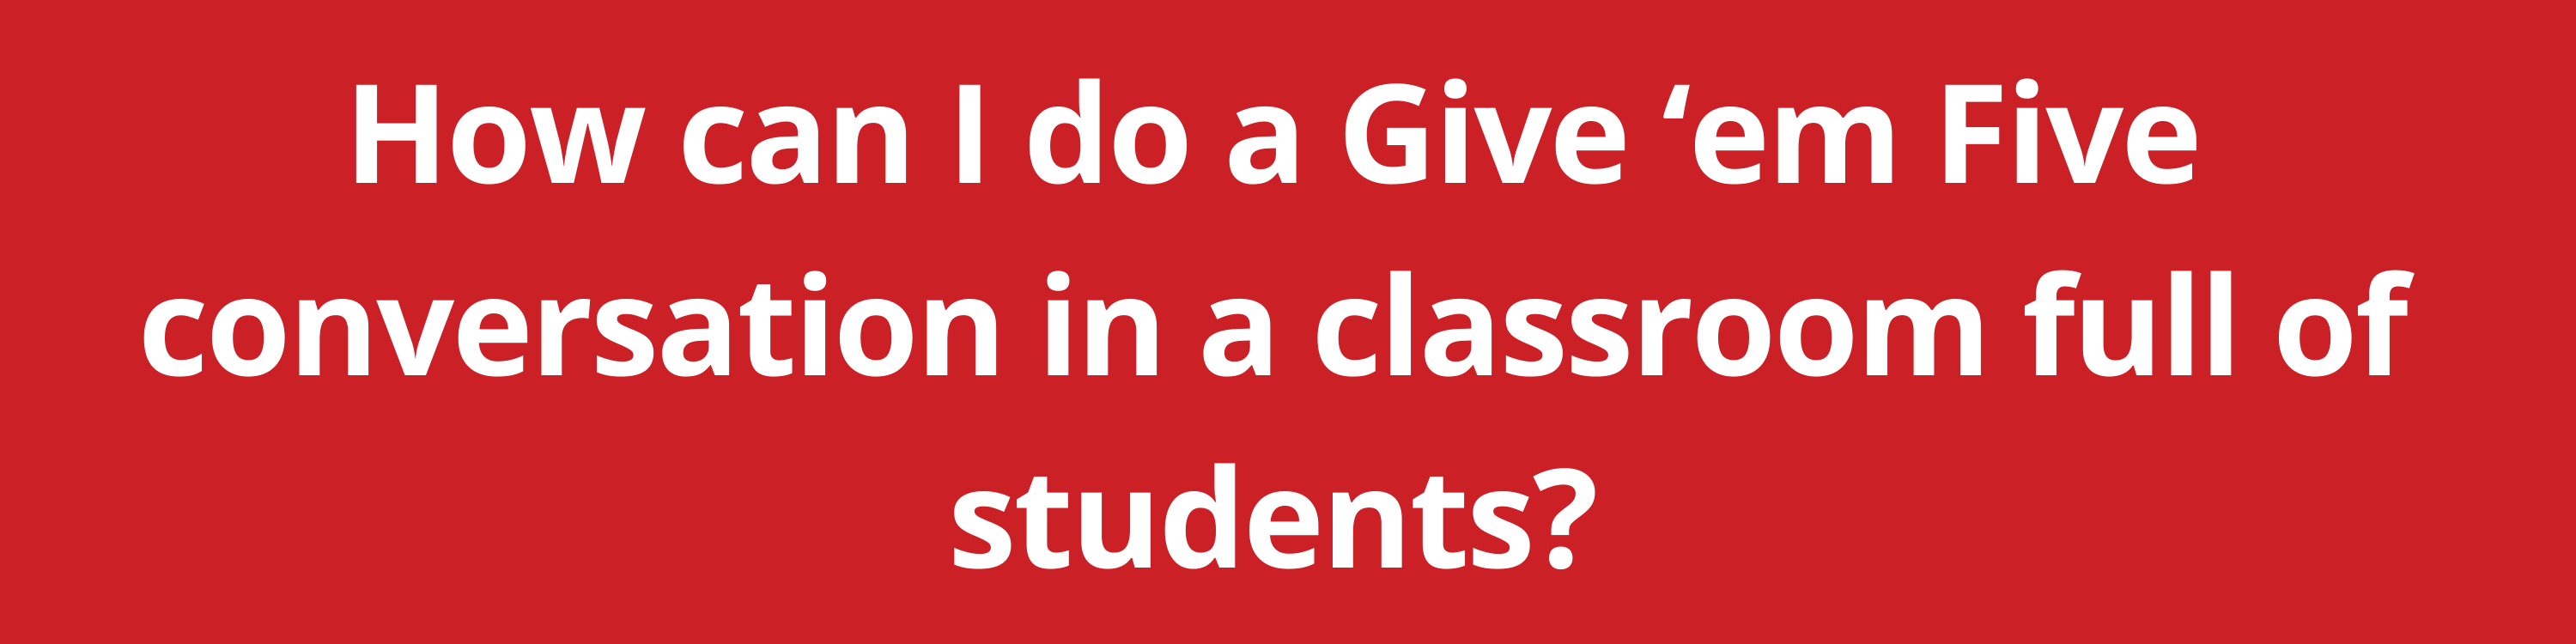 How can I do a Give 'em Five conversation in a classroom full of students?